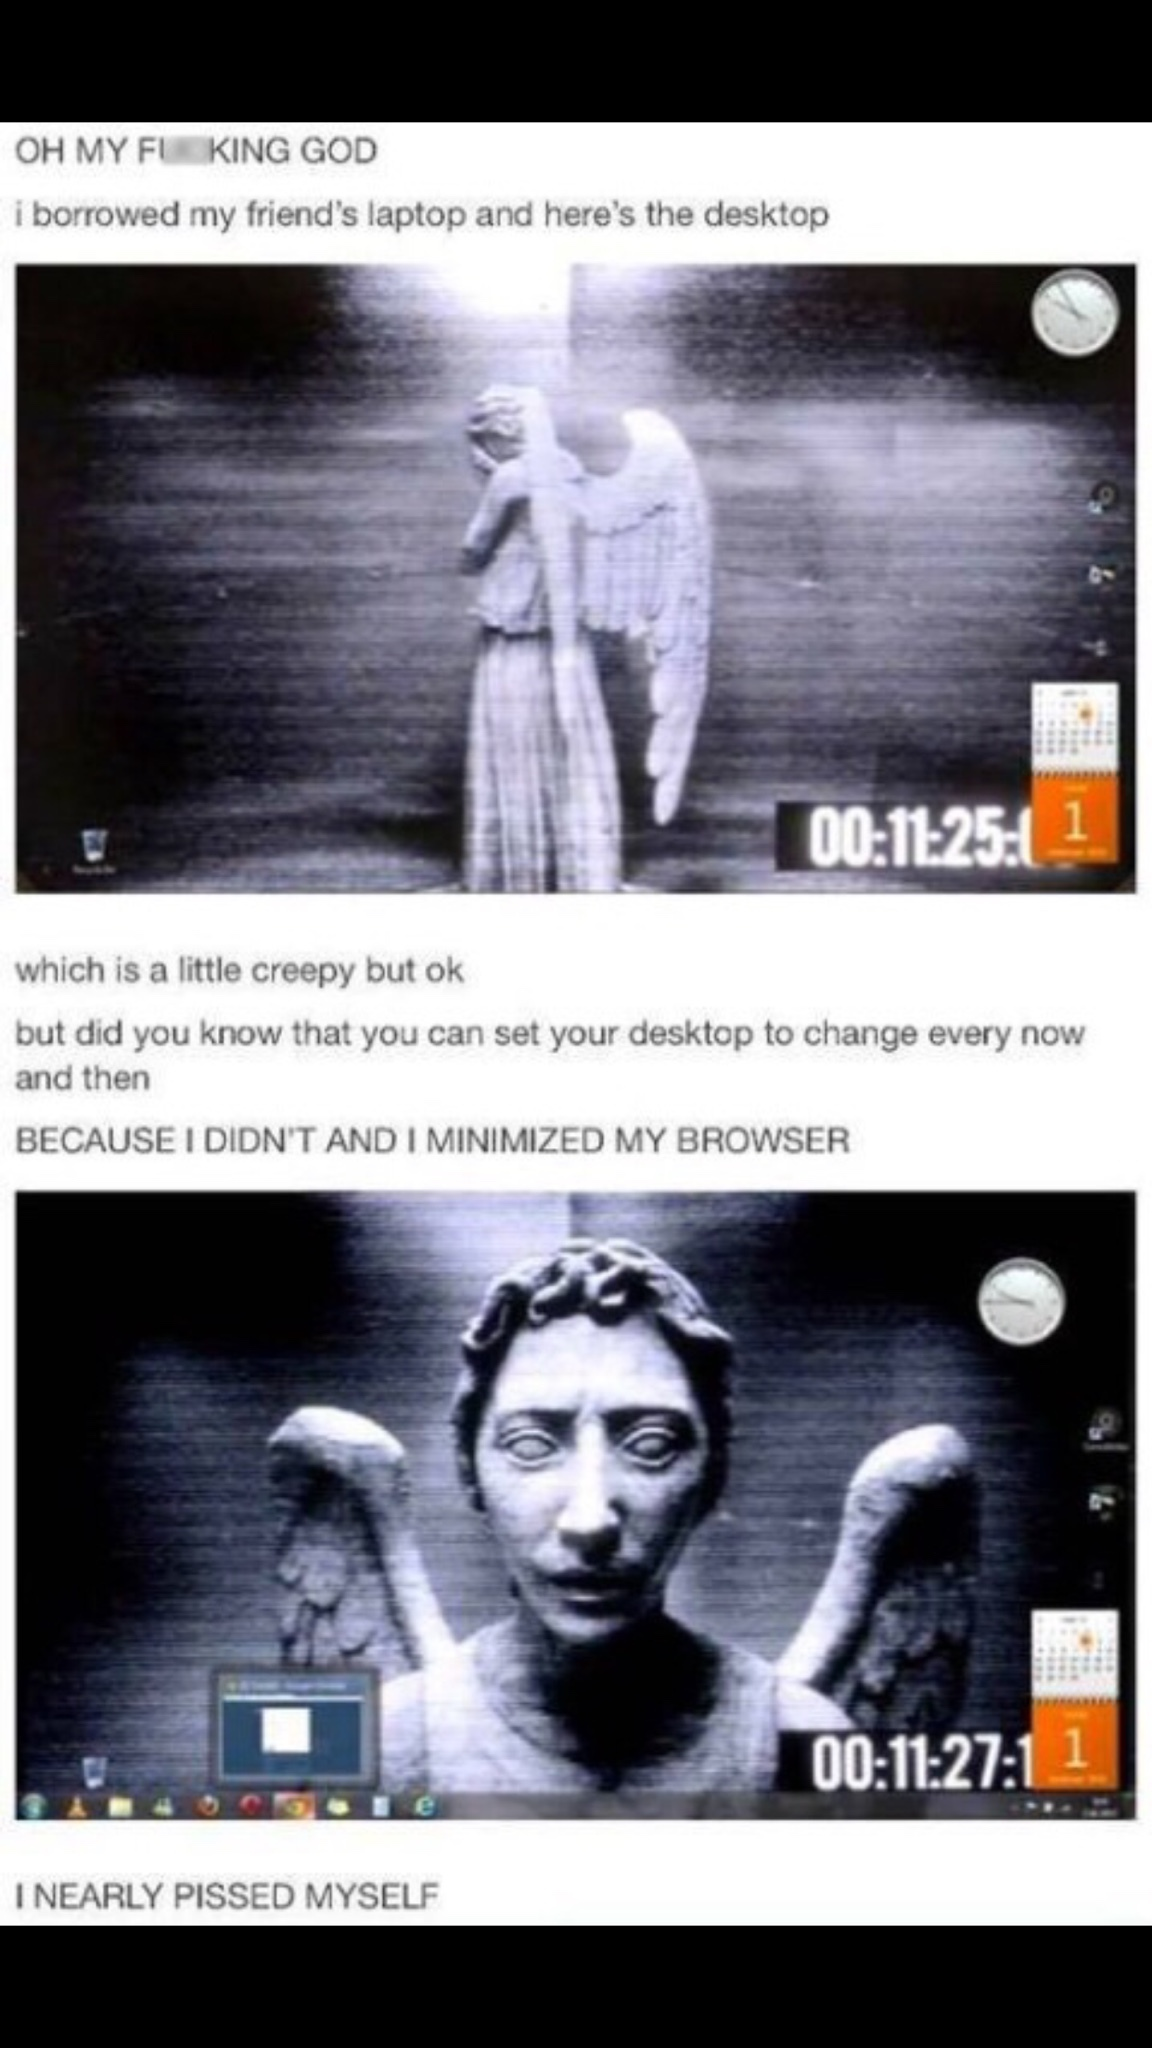 weeping angels man - meme